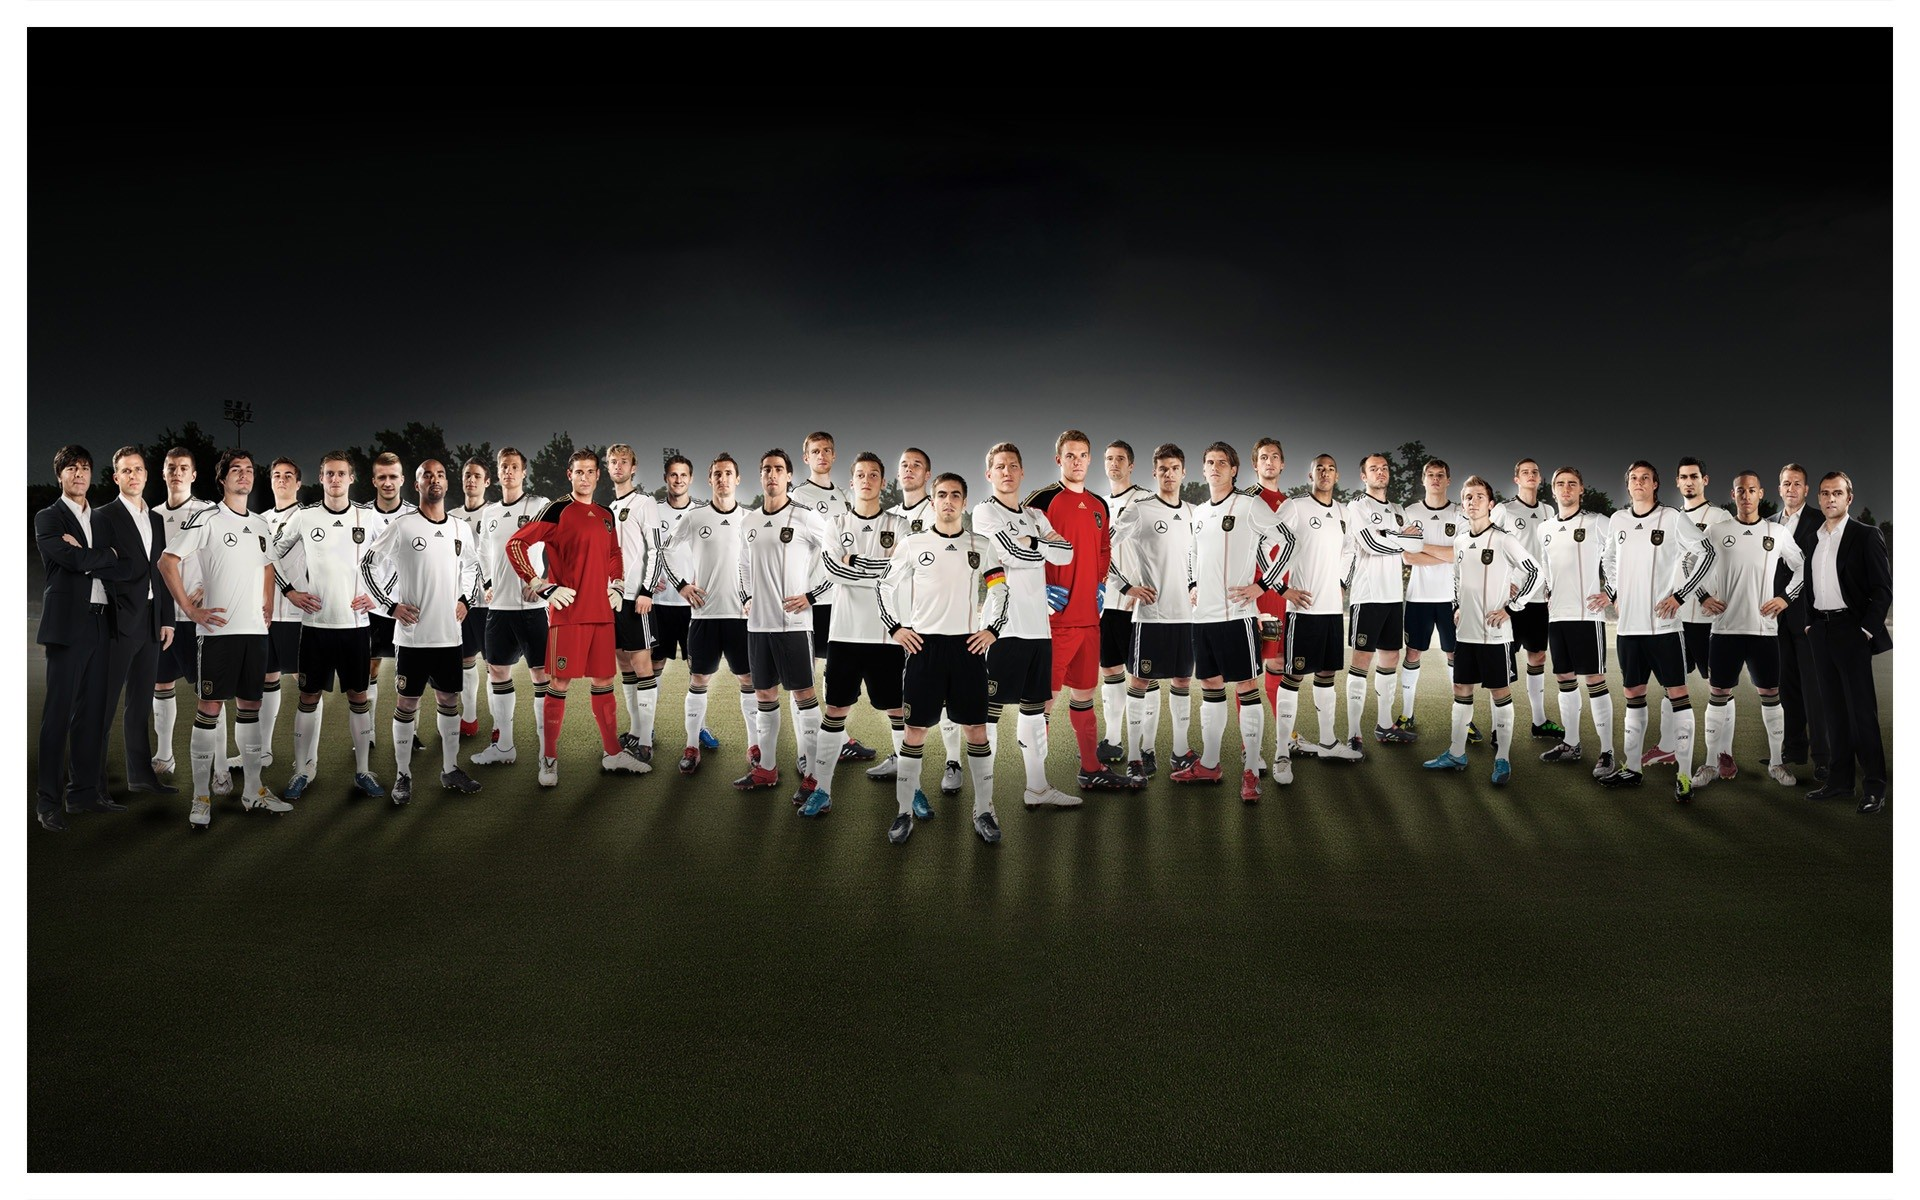 1920x1200 Germany National Football Team images Die Mannschaft HD wallpaper and  background photos